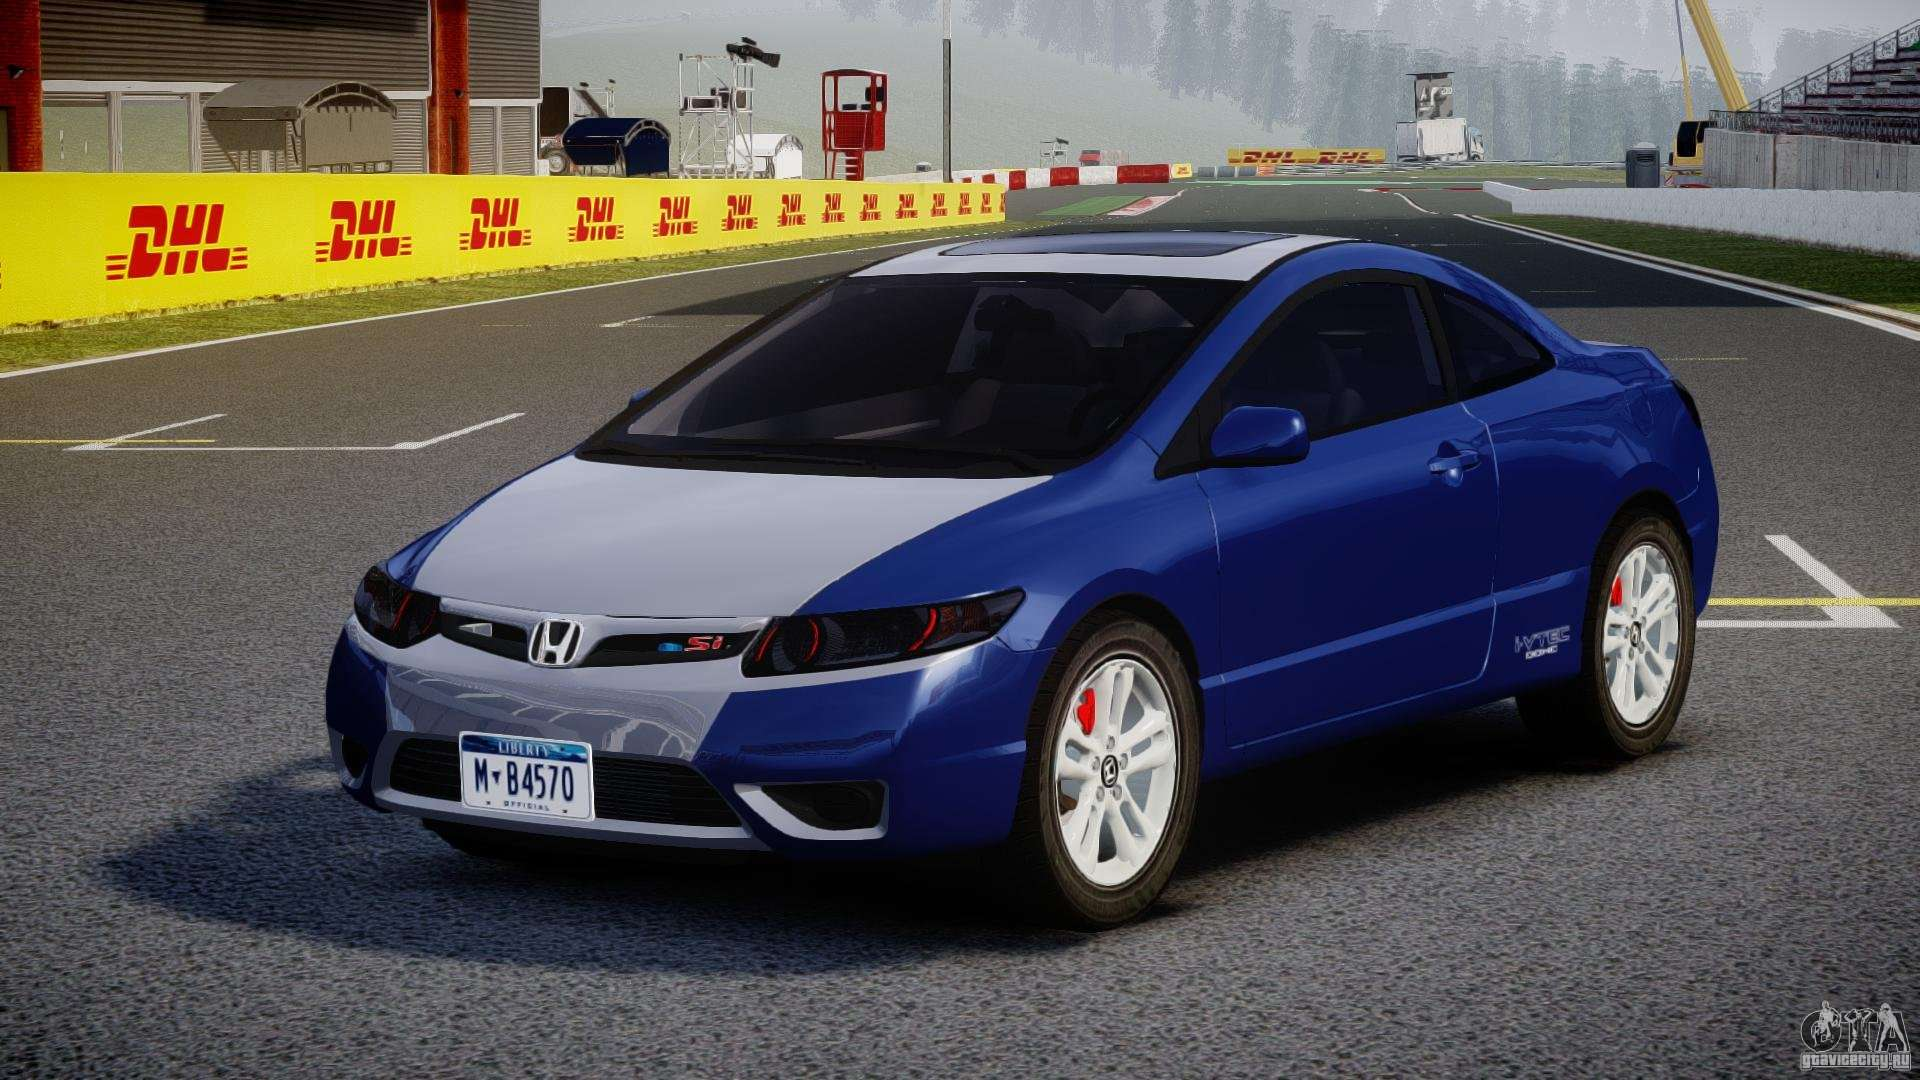 2013 Honda Civic Sedan >> Honda Civic Si Coupe 2006 v1.0 for GTA 4